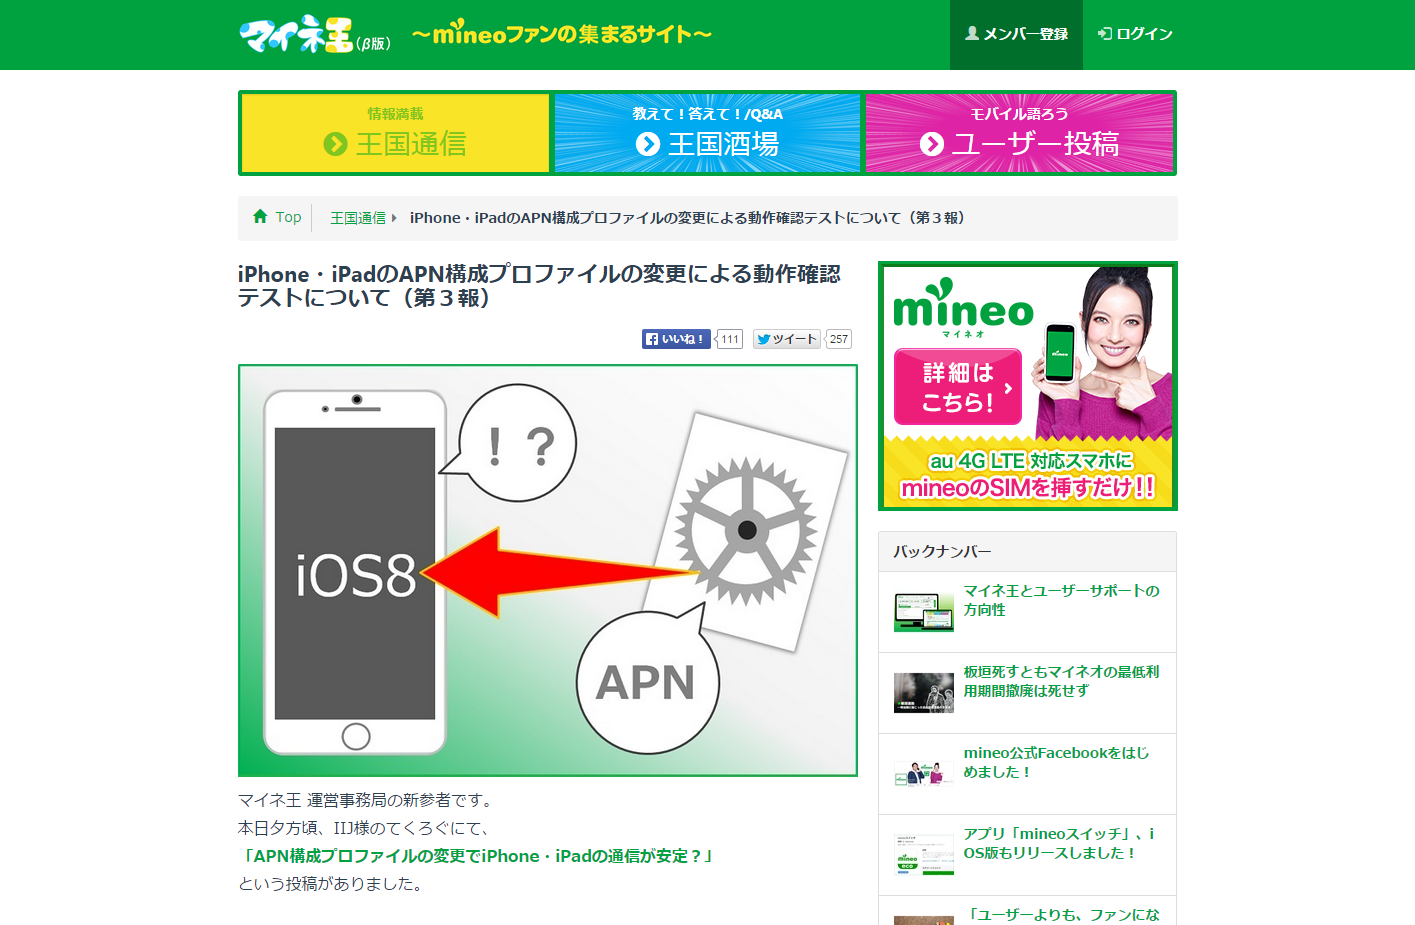 ios8.4のiPhone/iPadでmineoが利用可能に?